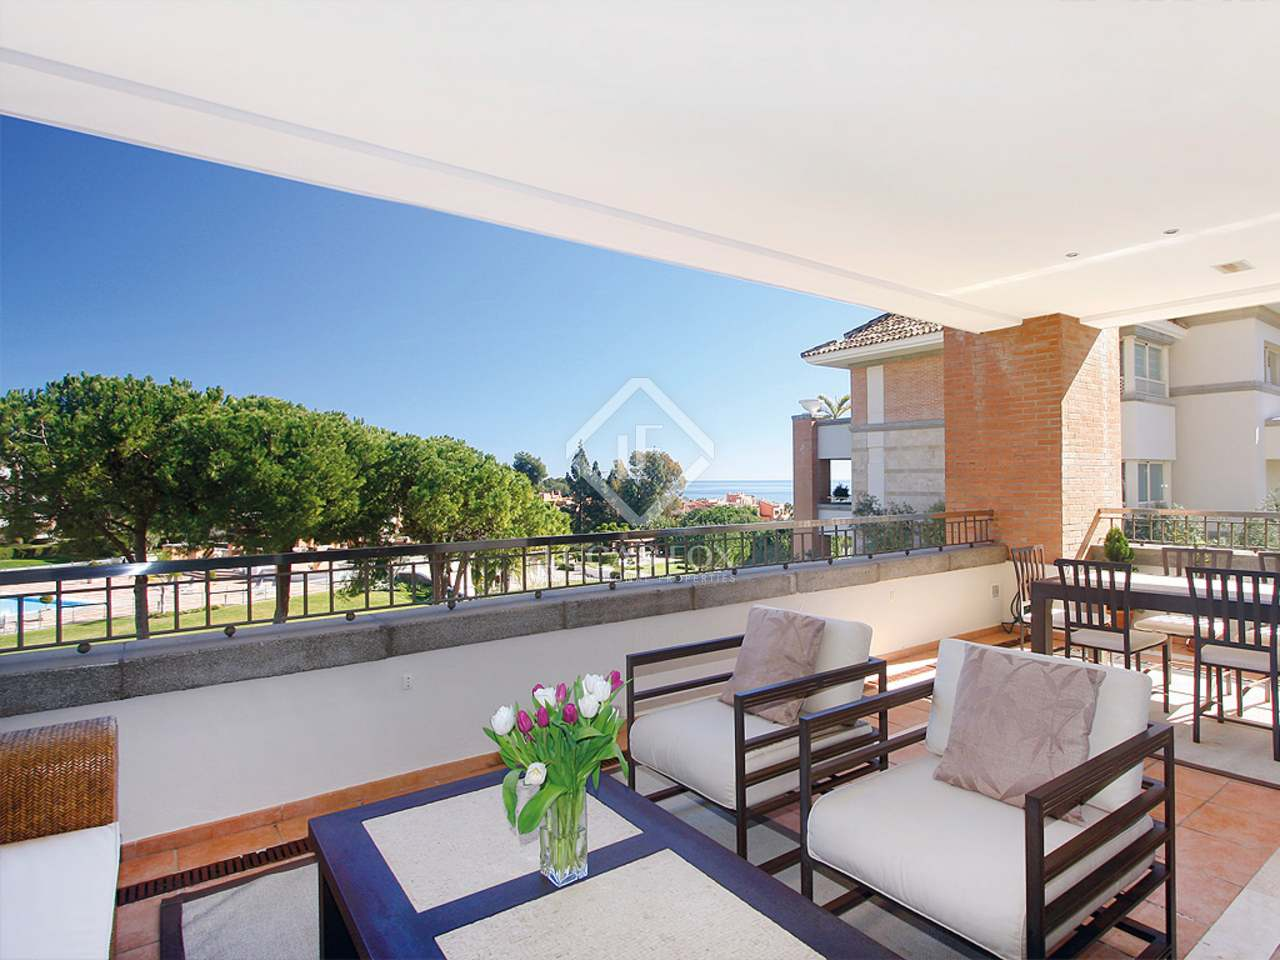 Terrace - 3 Bed Apartment for sale, La Trinidad, Golden Mile, Marbella